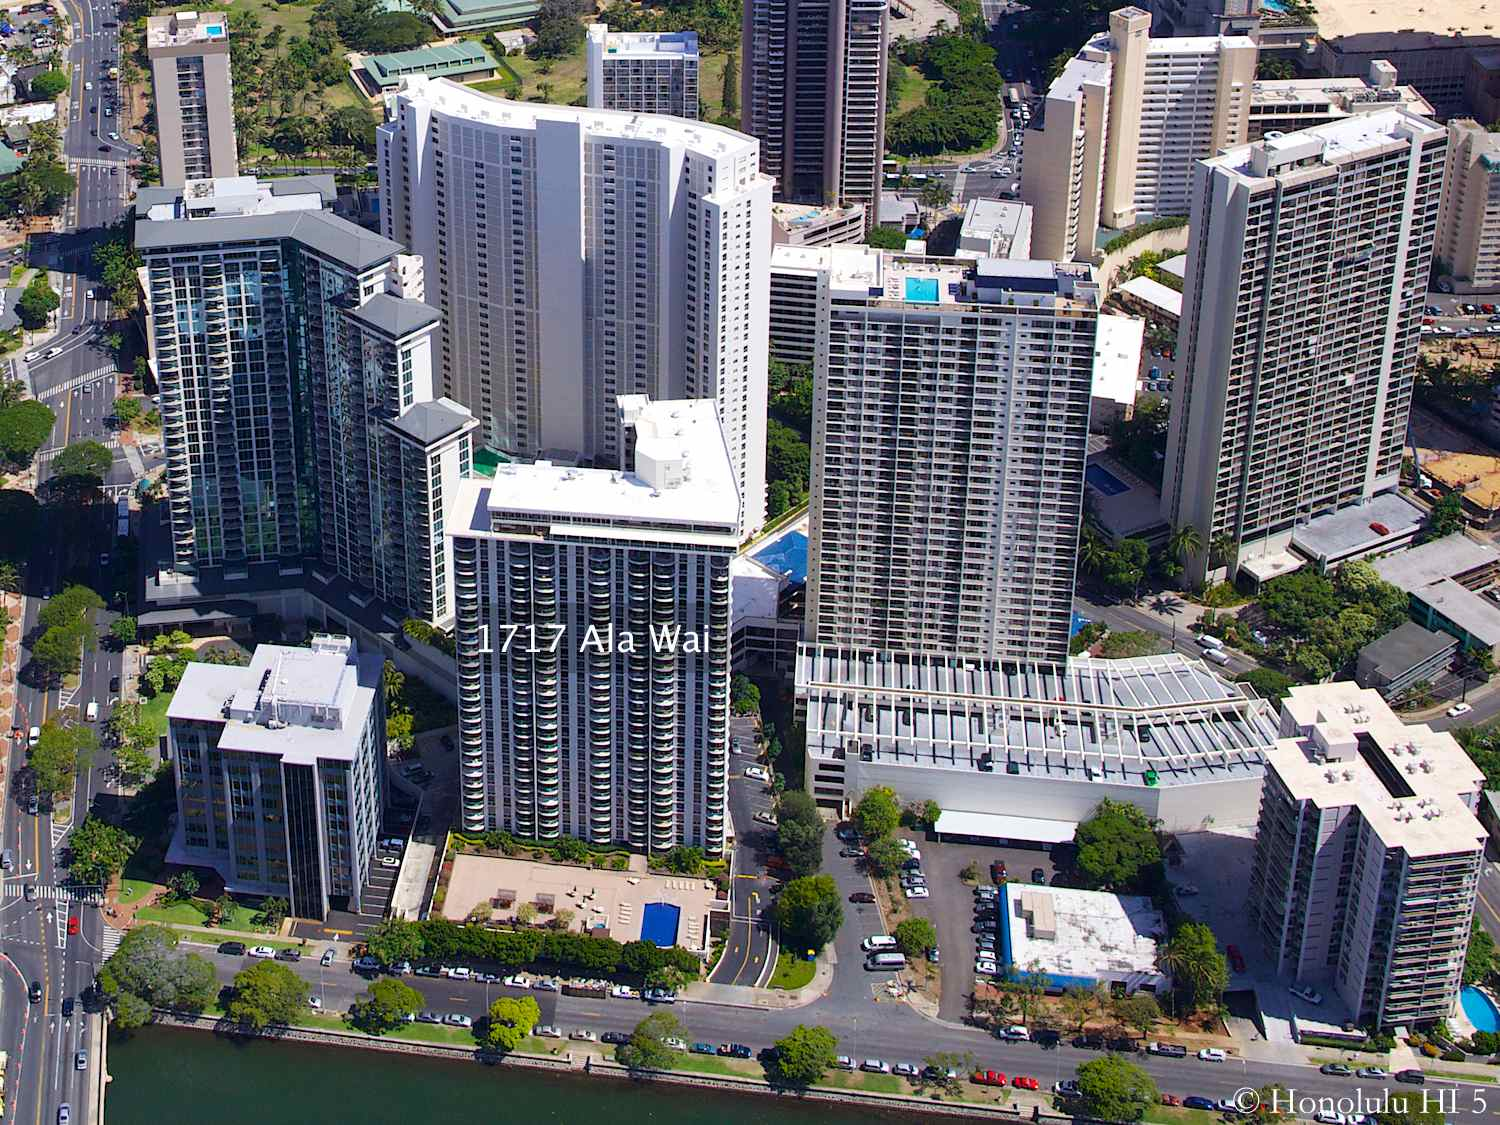 1717 Ala Wai Condo in Waikiki Seen From the Air with other High-rises Around